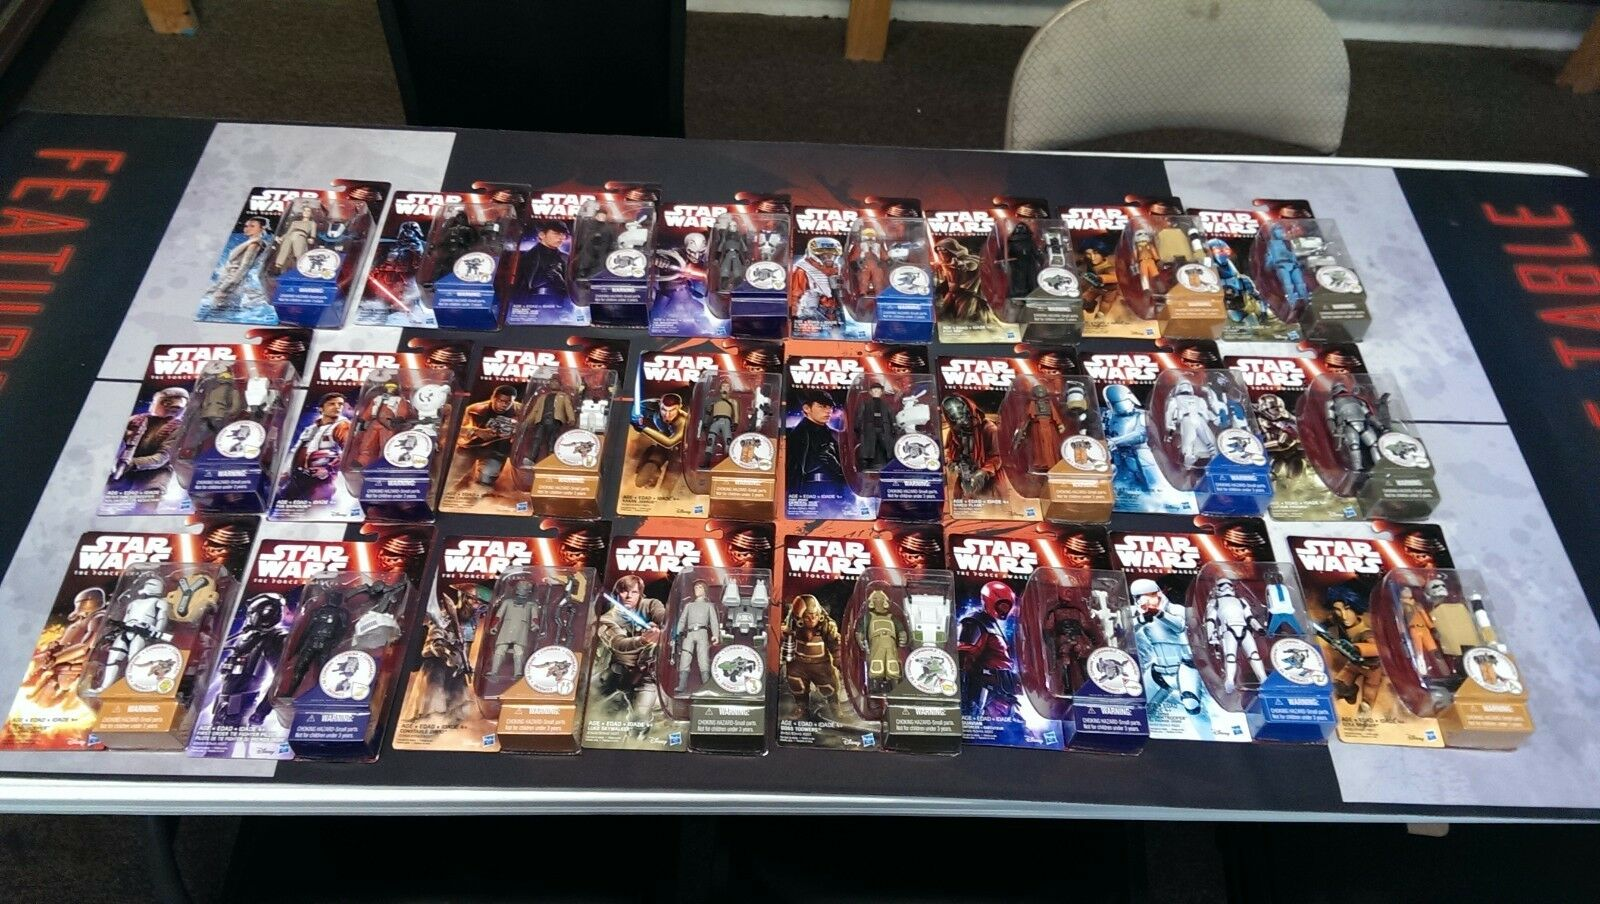 24 STAR WARS carded action figures - The Force Awakes - Darth Vader, Luke, Fin